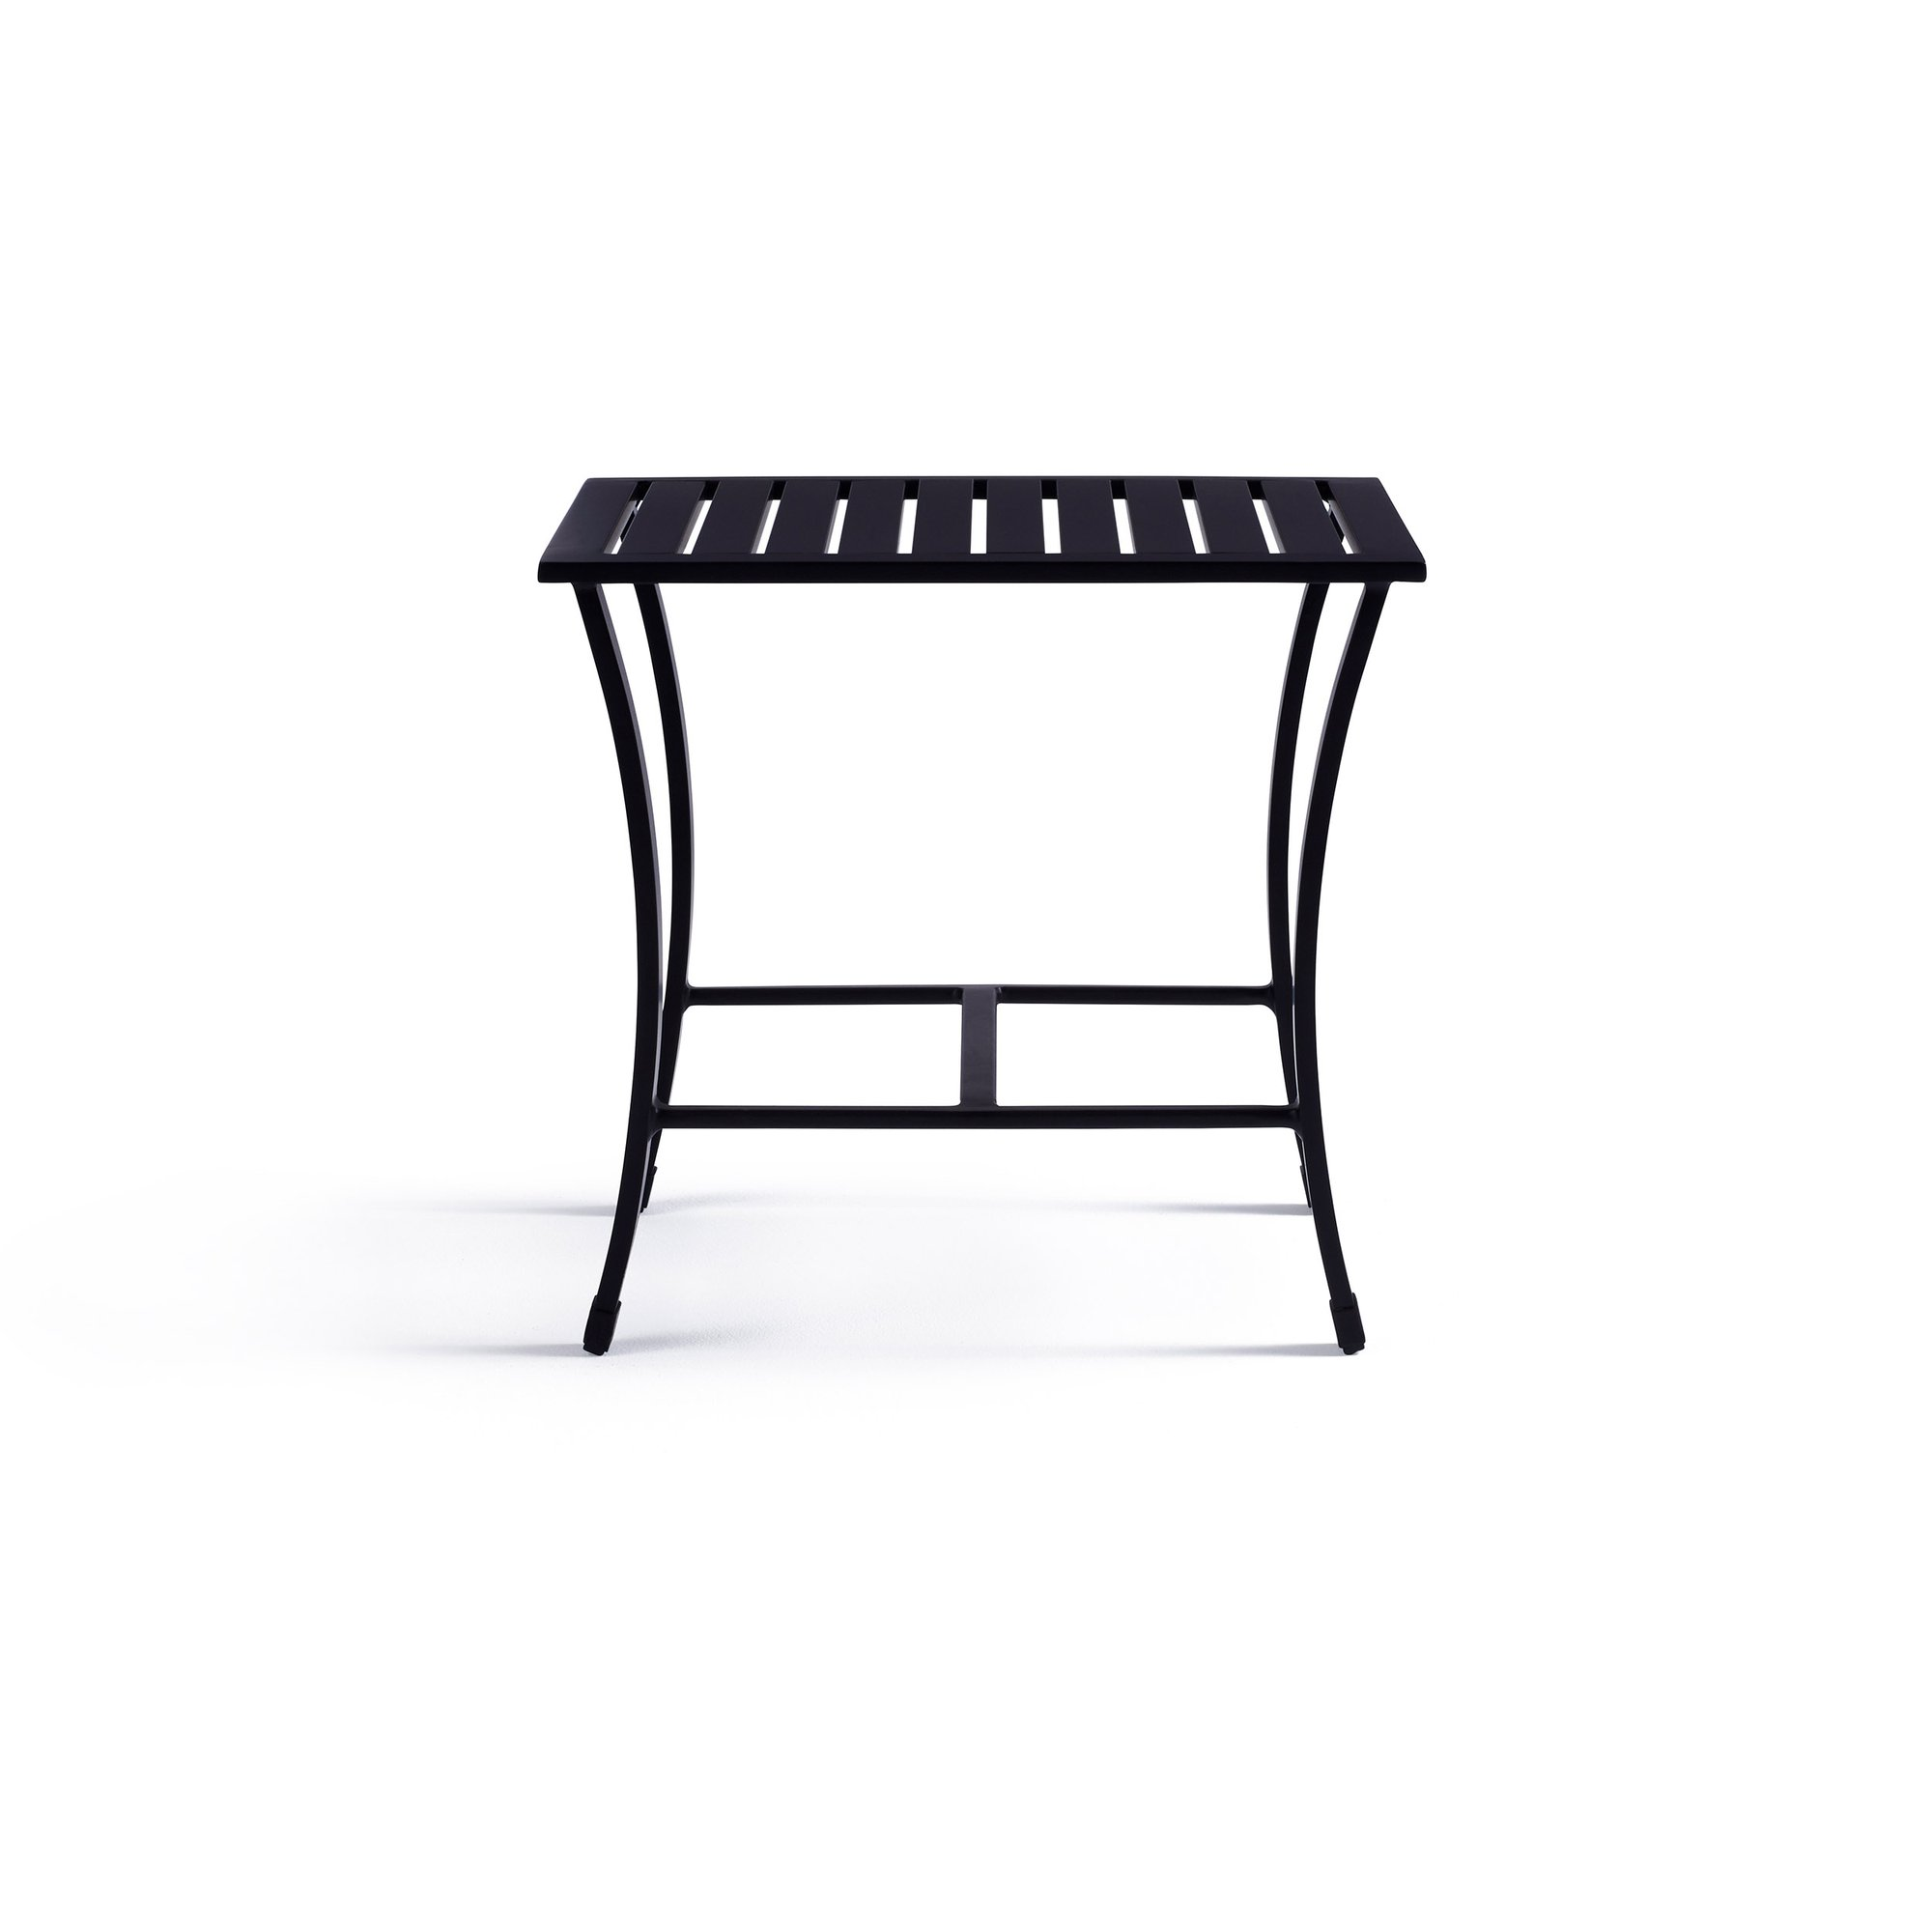 colby outdoor side table yardbird accent black furniture decorative chests and cabinets round dining room sets square patio set cover pier target threshold marble top console ikea